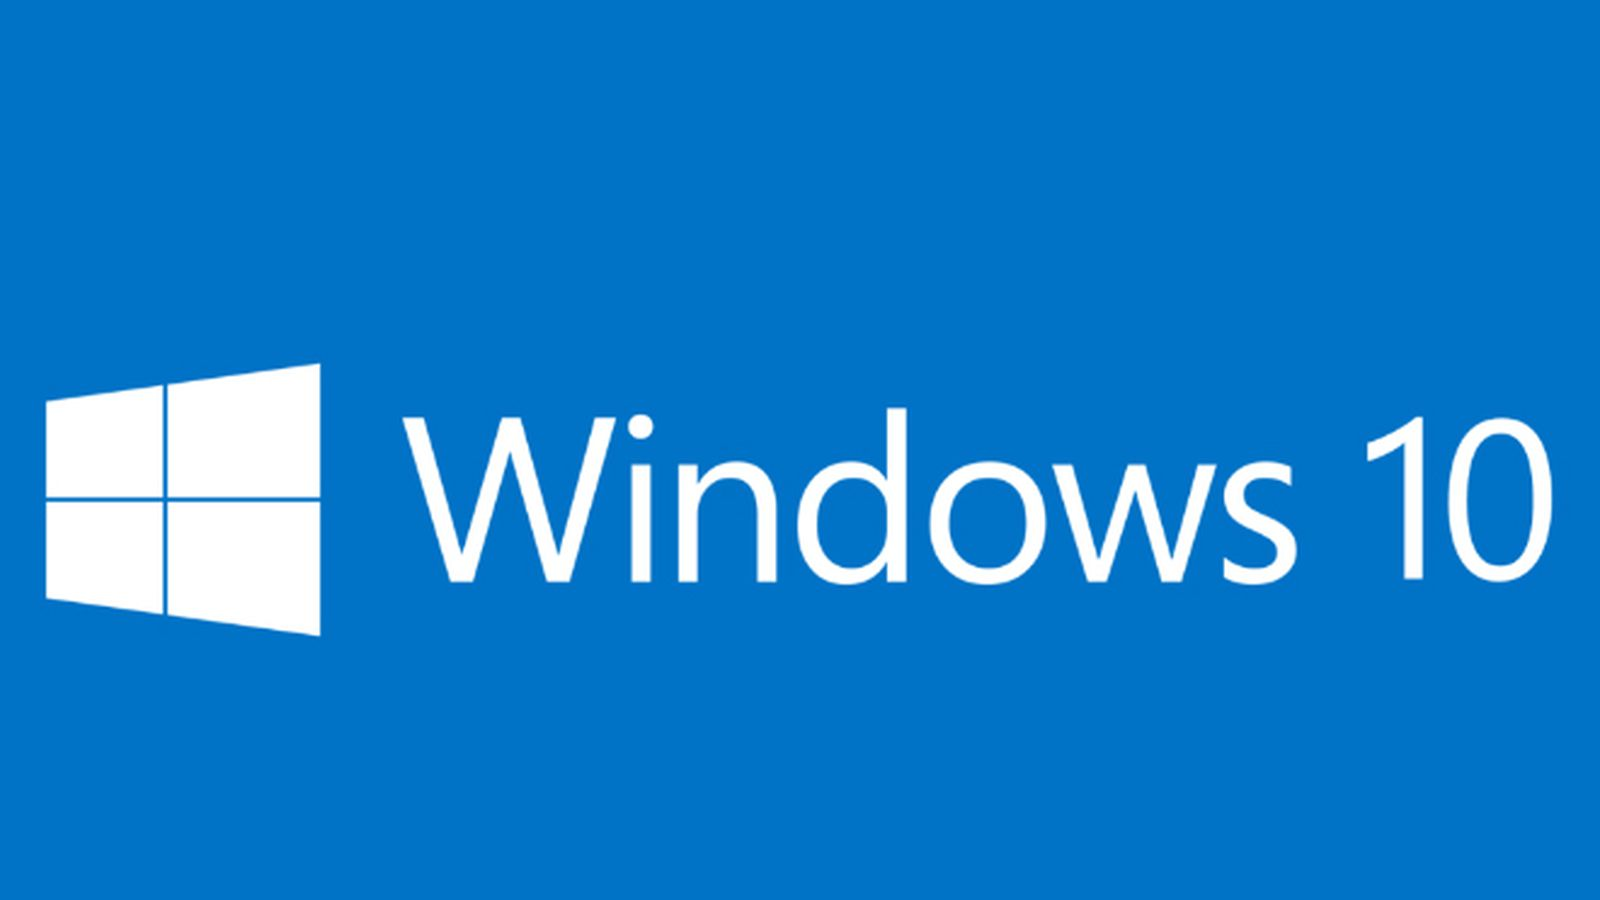 Microsoft Giving away When the Next Windows 10 Is Published